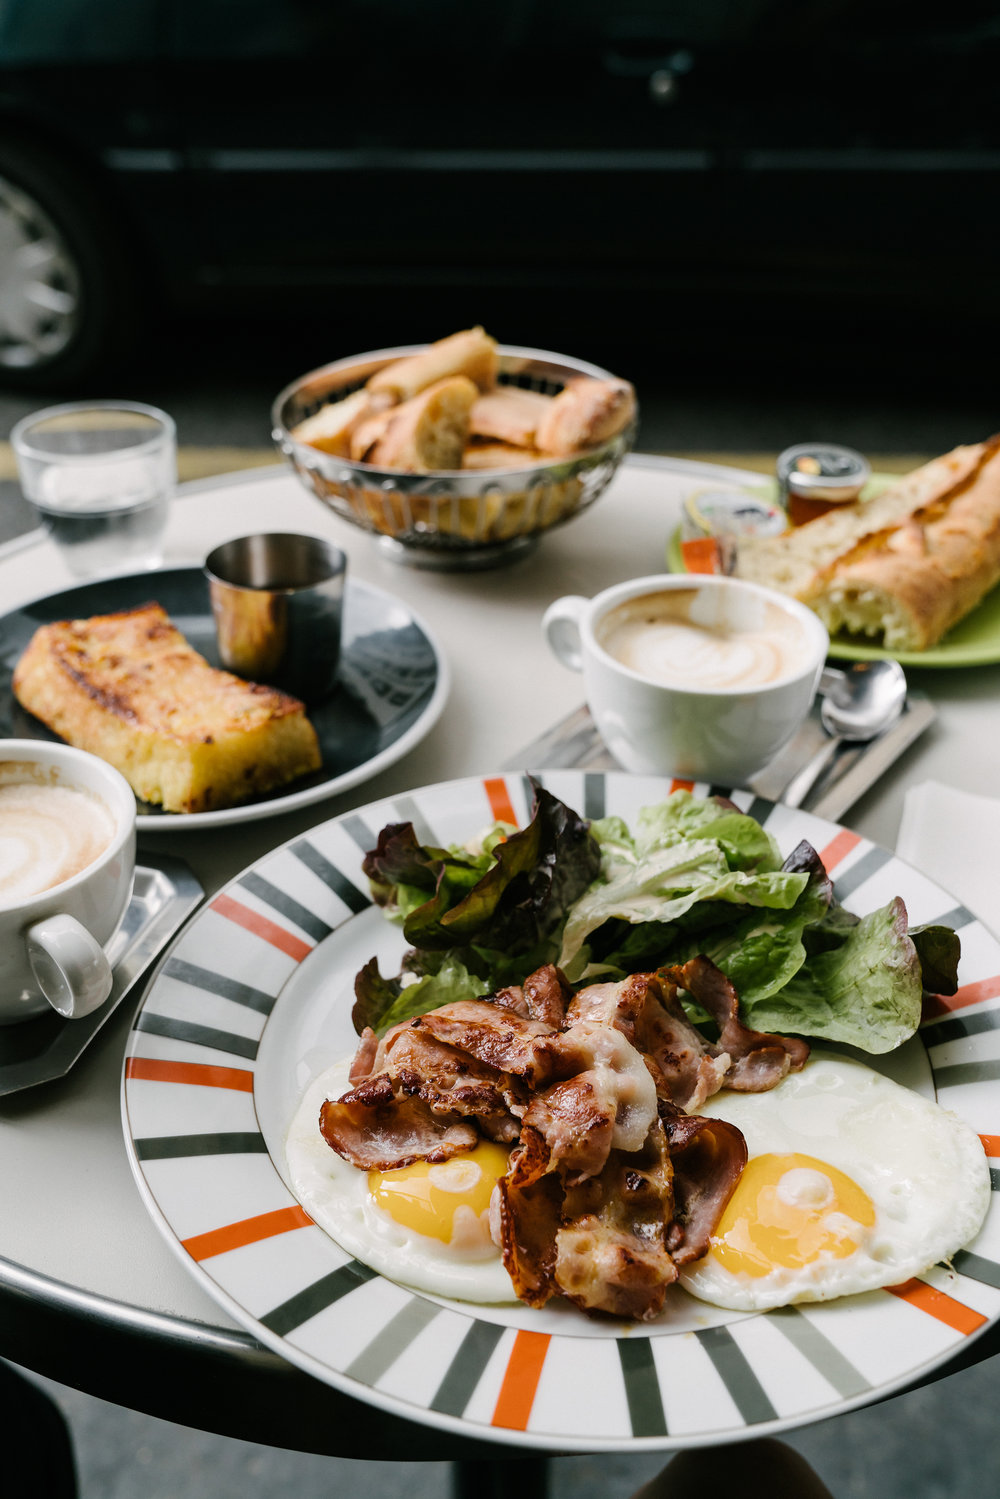 Simple brunches are always the best, at Café de la Poste